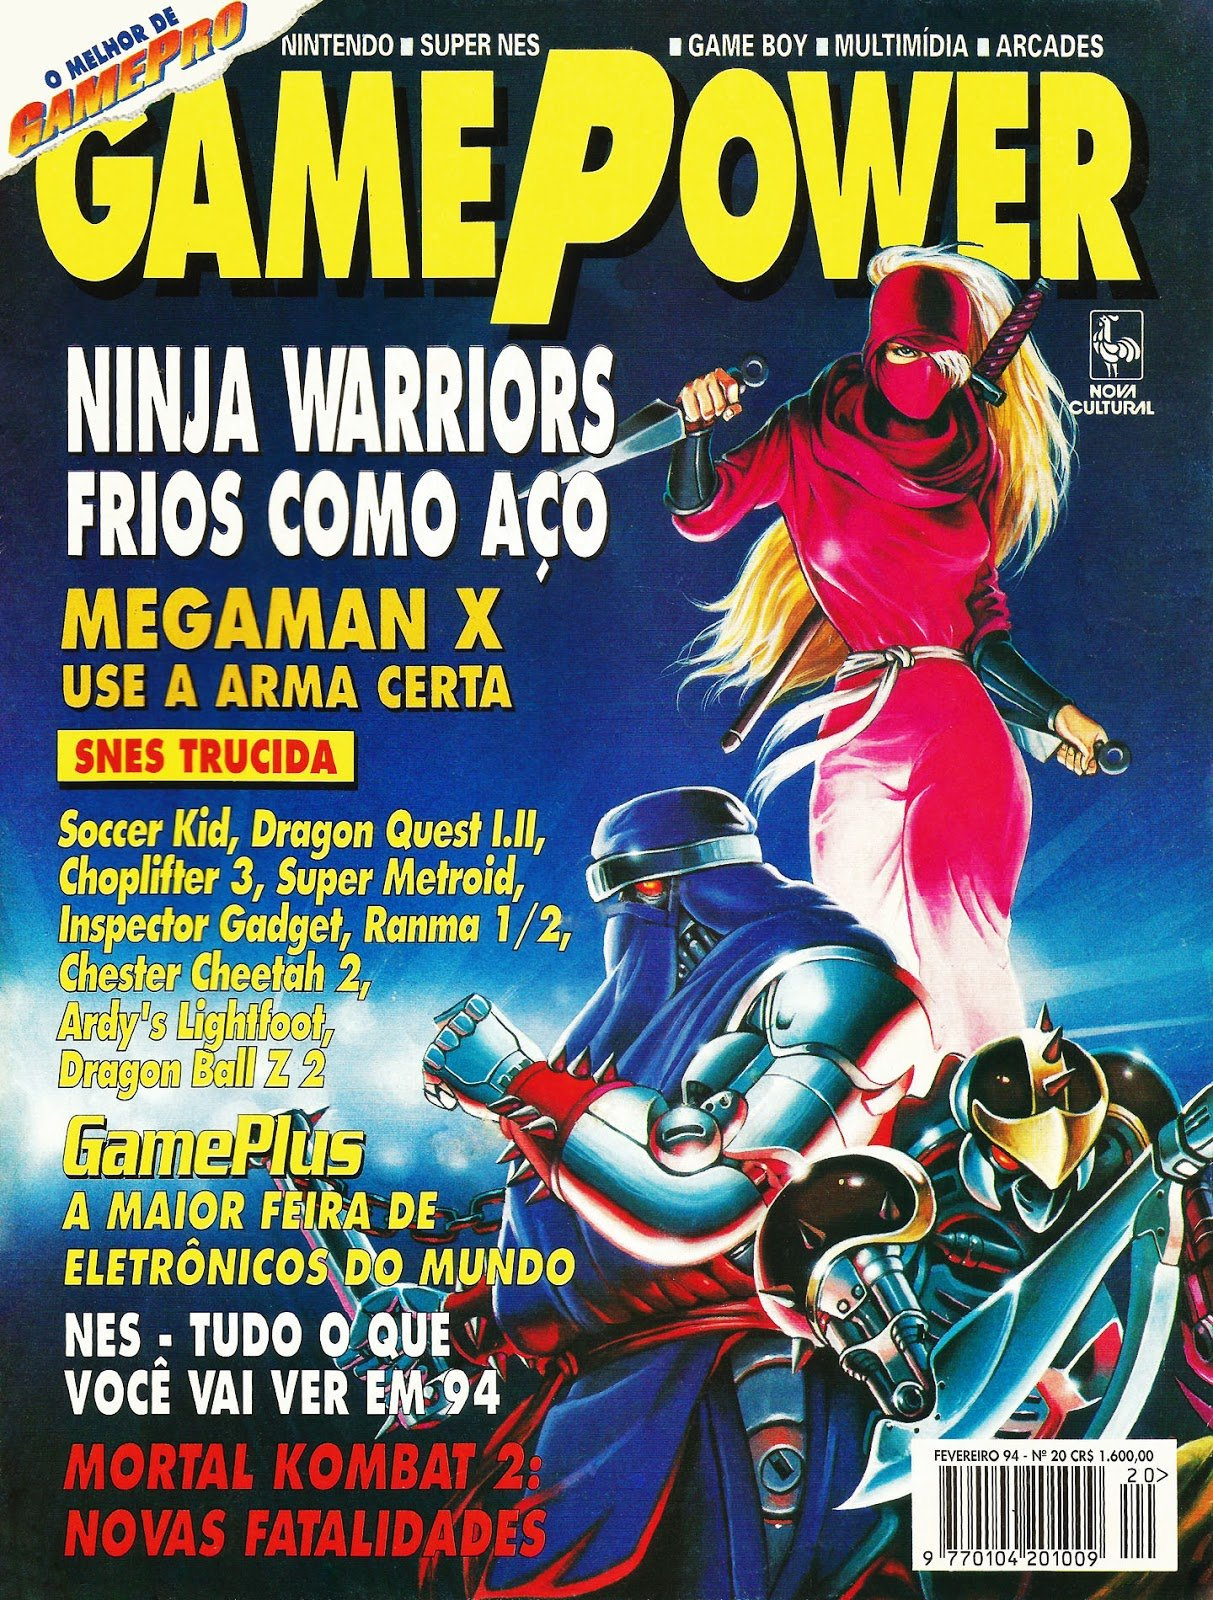 GamePower Issue 020 (February 1994)